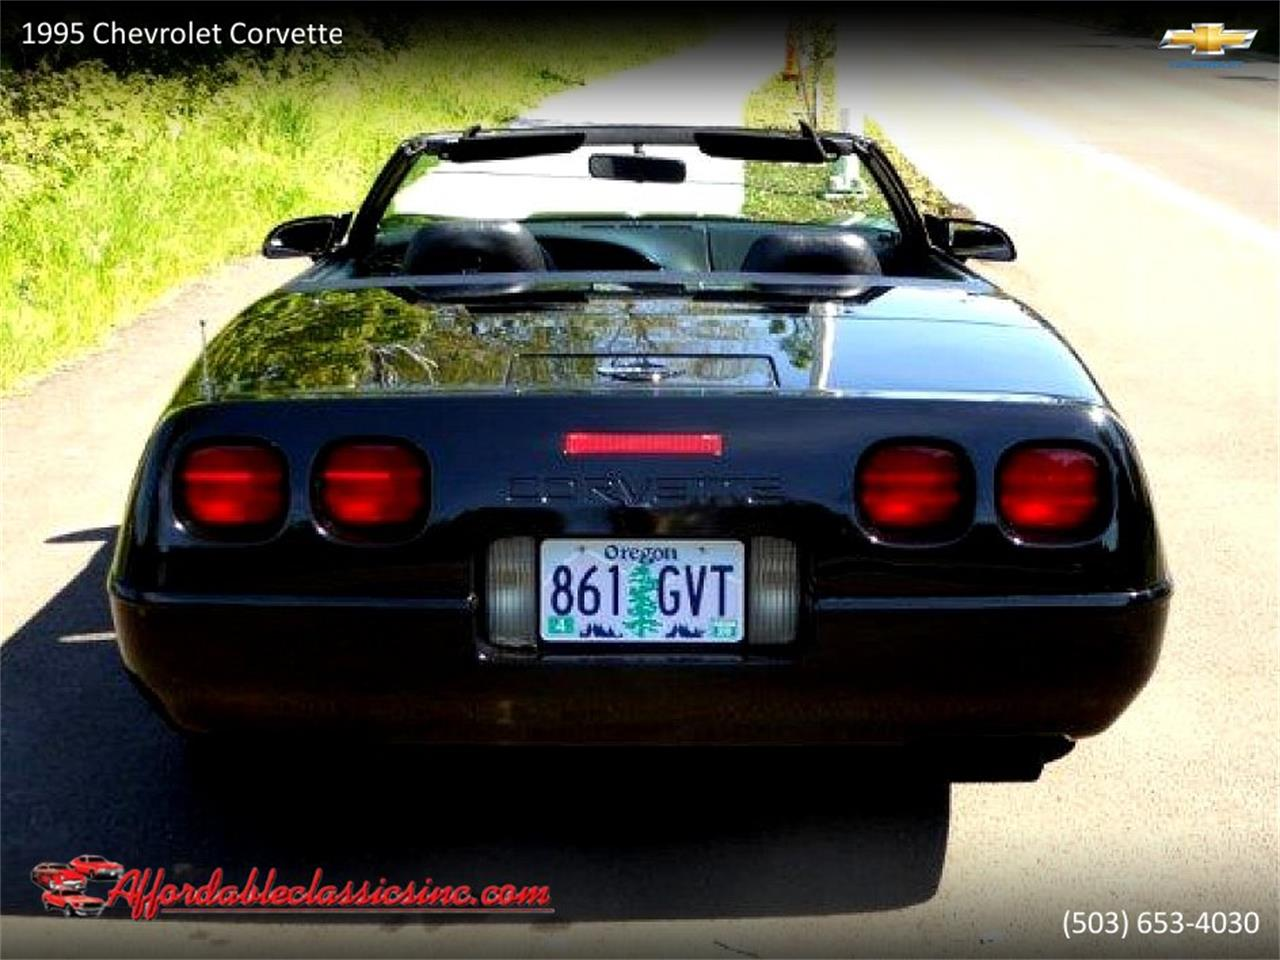 Large Picture of '95 Chevrolet Corvette located in Gladstone Oregon - $10,500.00 - Q35A